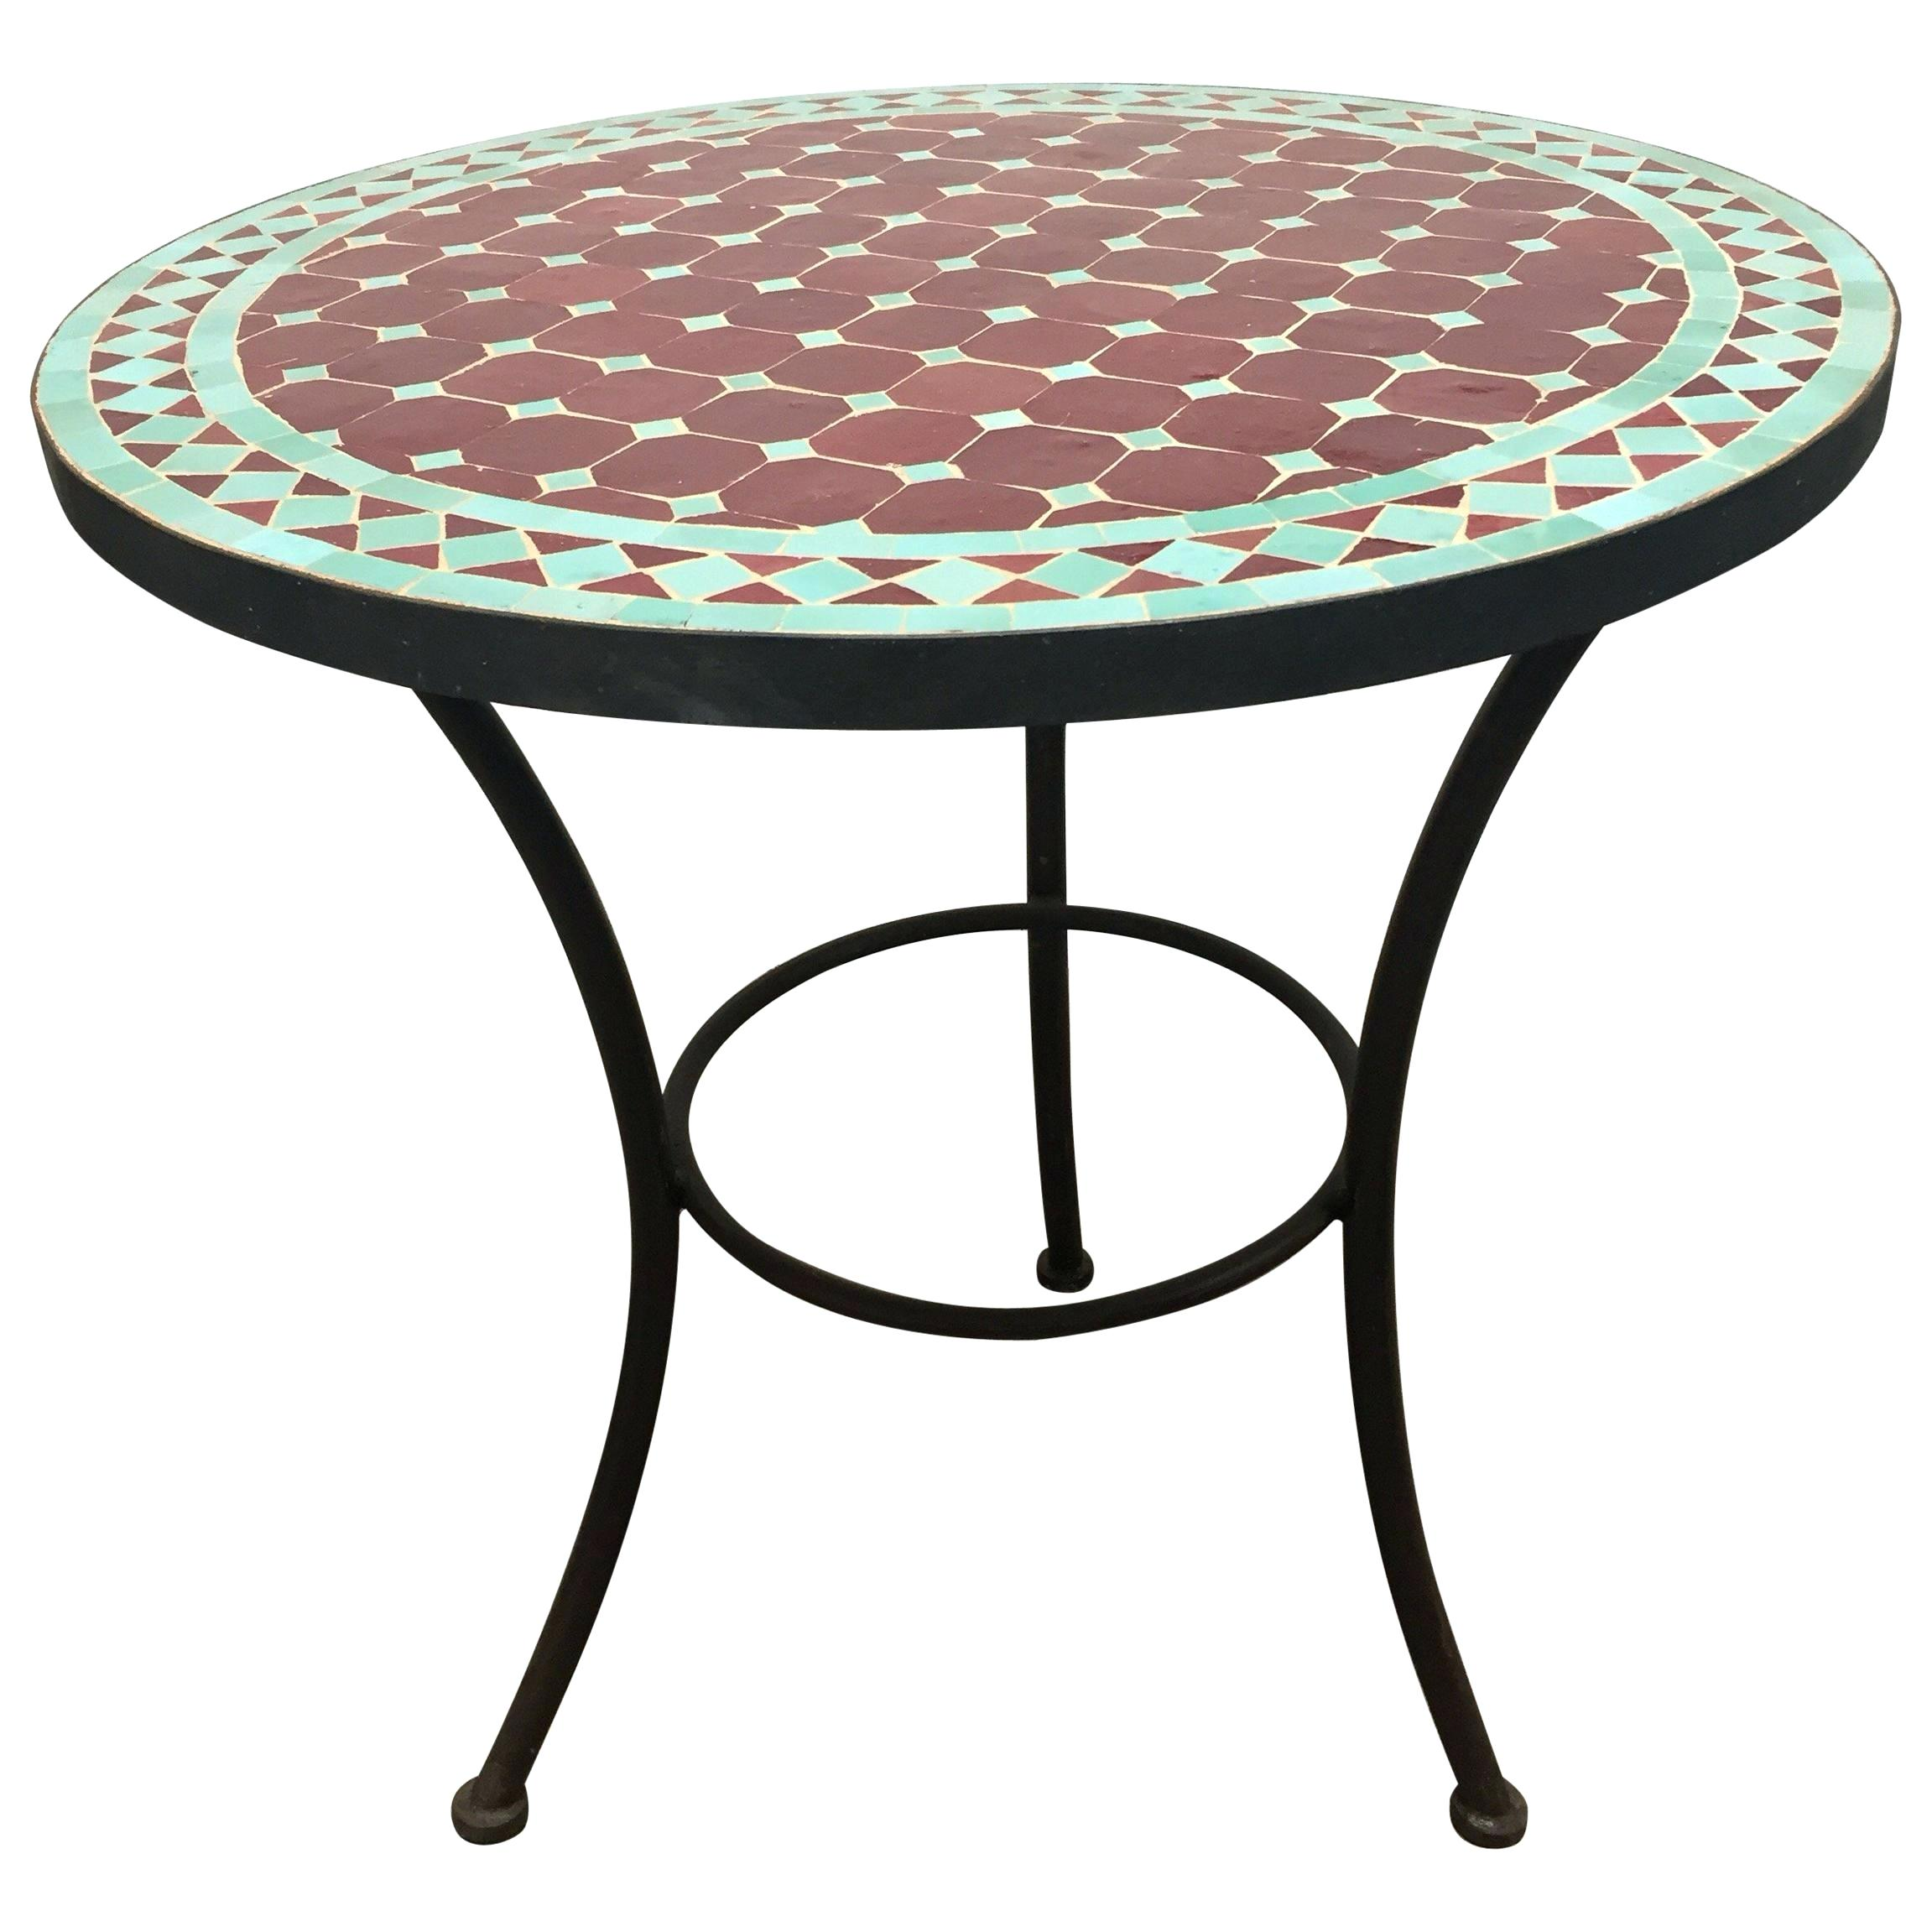 tile bistro table mosaic and two iron chairs pottery barn top colortap round indoor outdoor for white accent leaf square patio cover corner end standard coffee height concrete